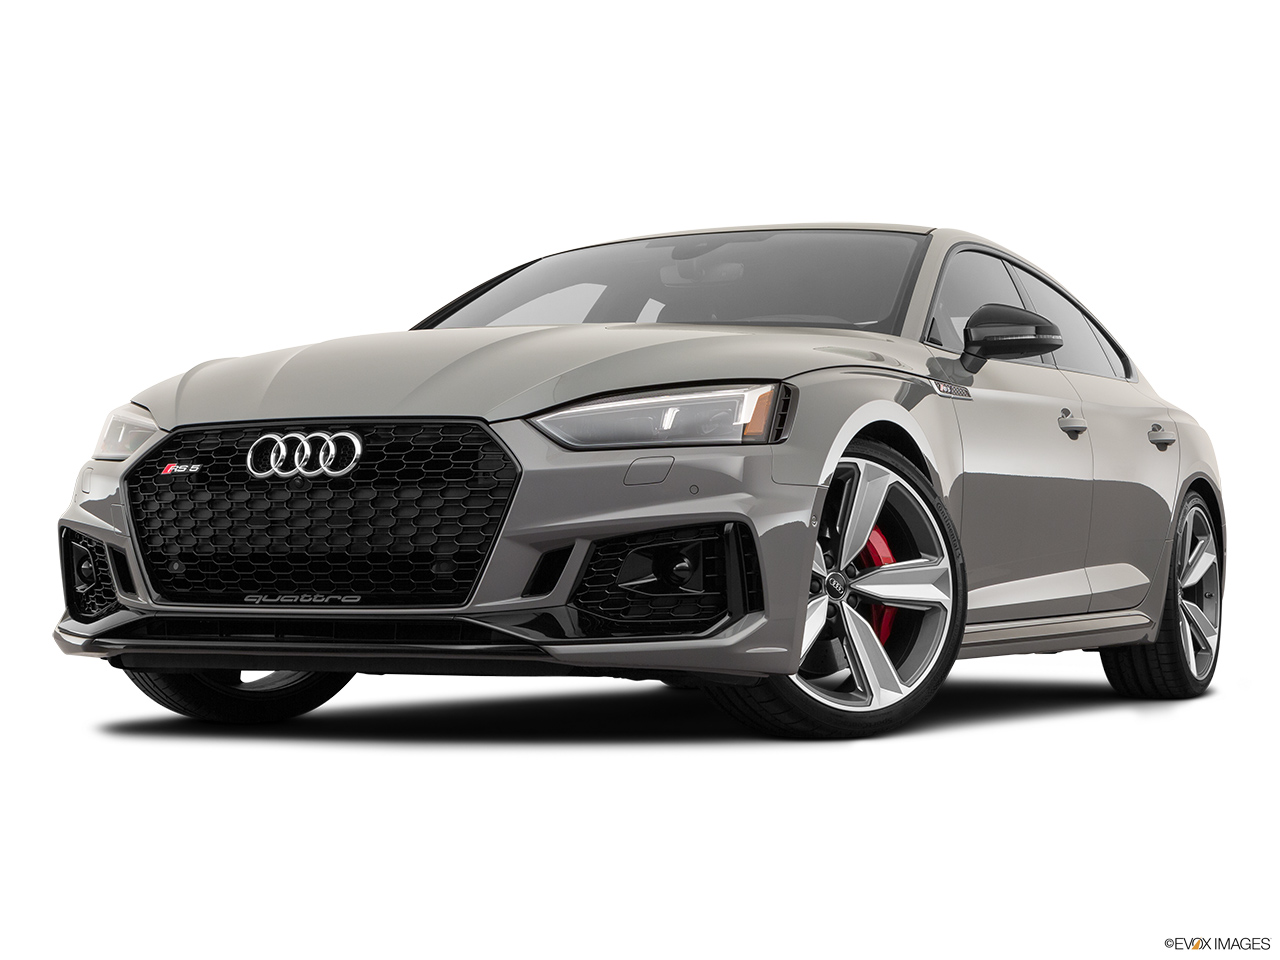 2019 Audi RS 5 Sportback 2.9 TFSI Front angle view, low wide perspective.